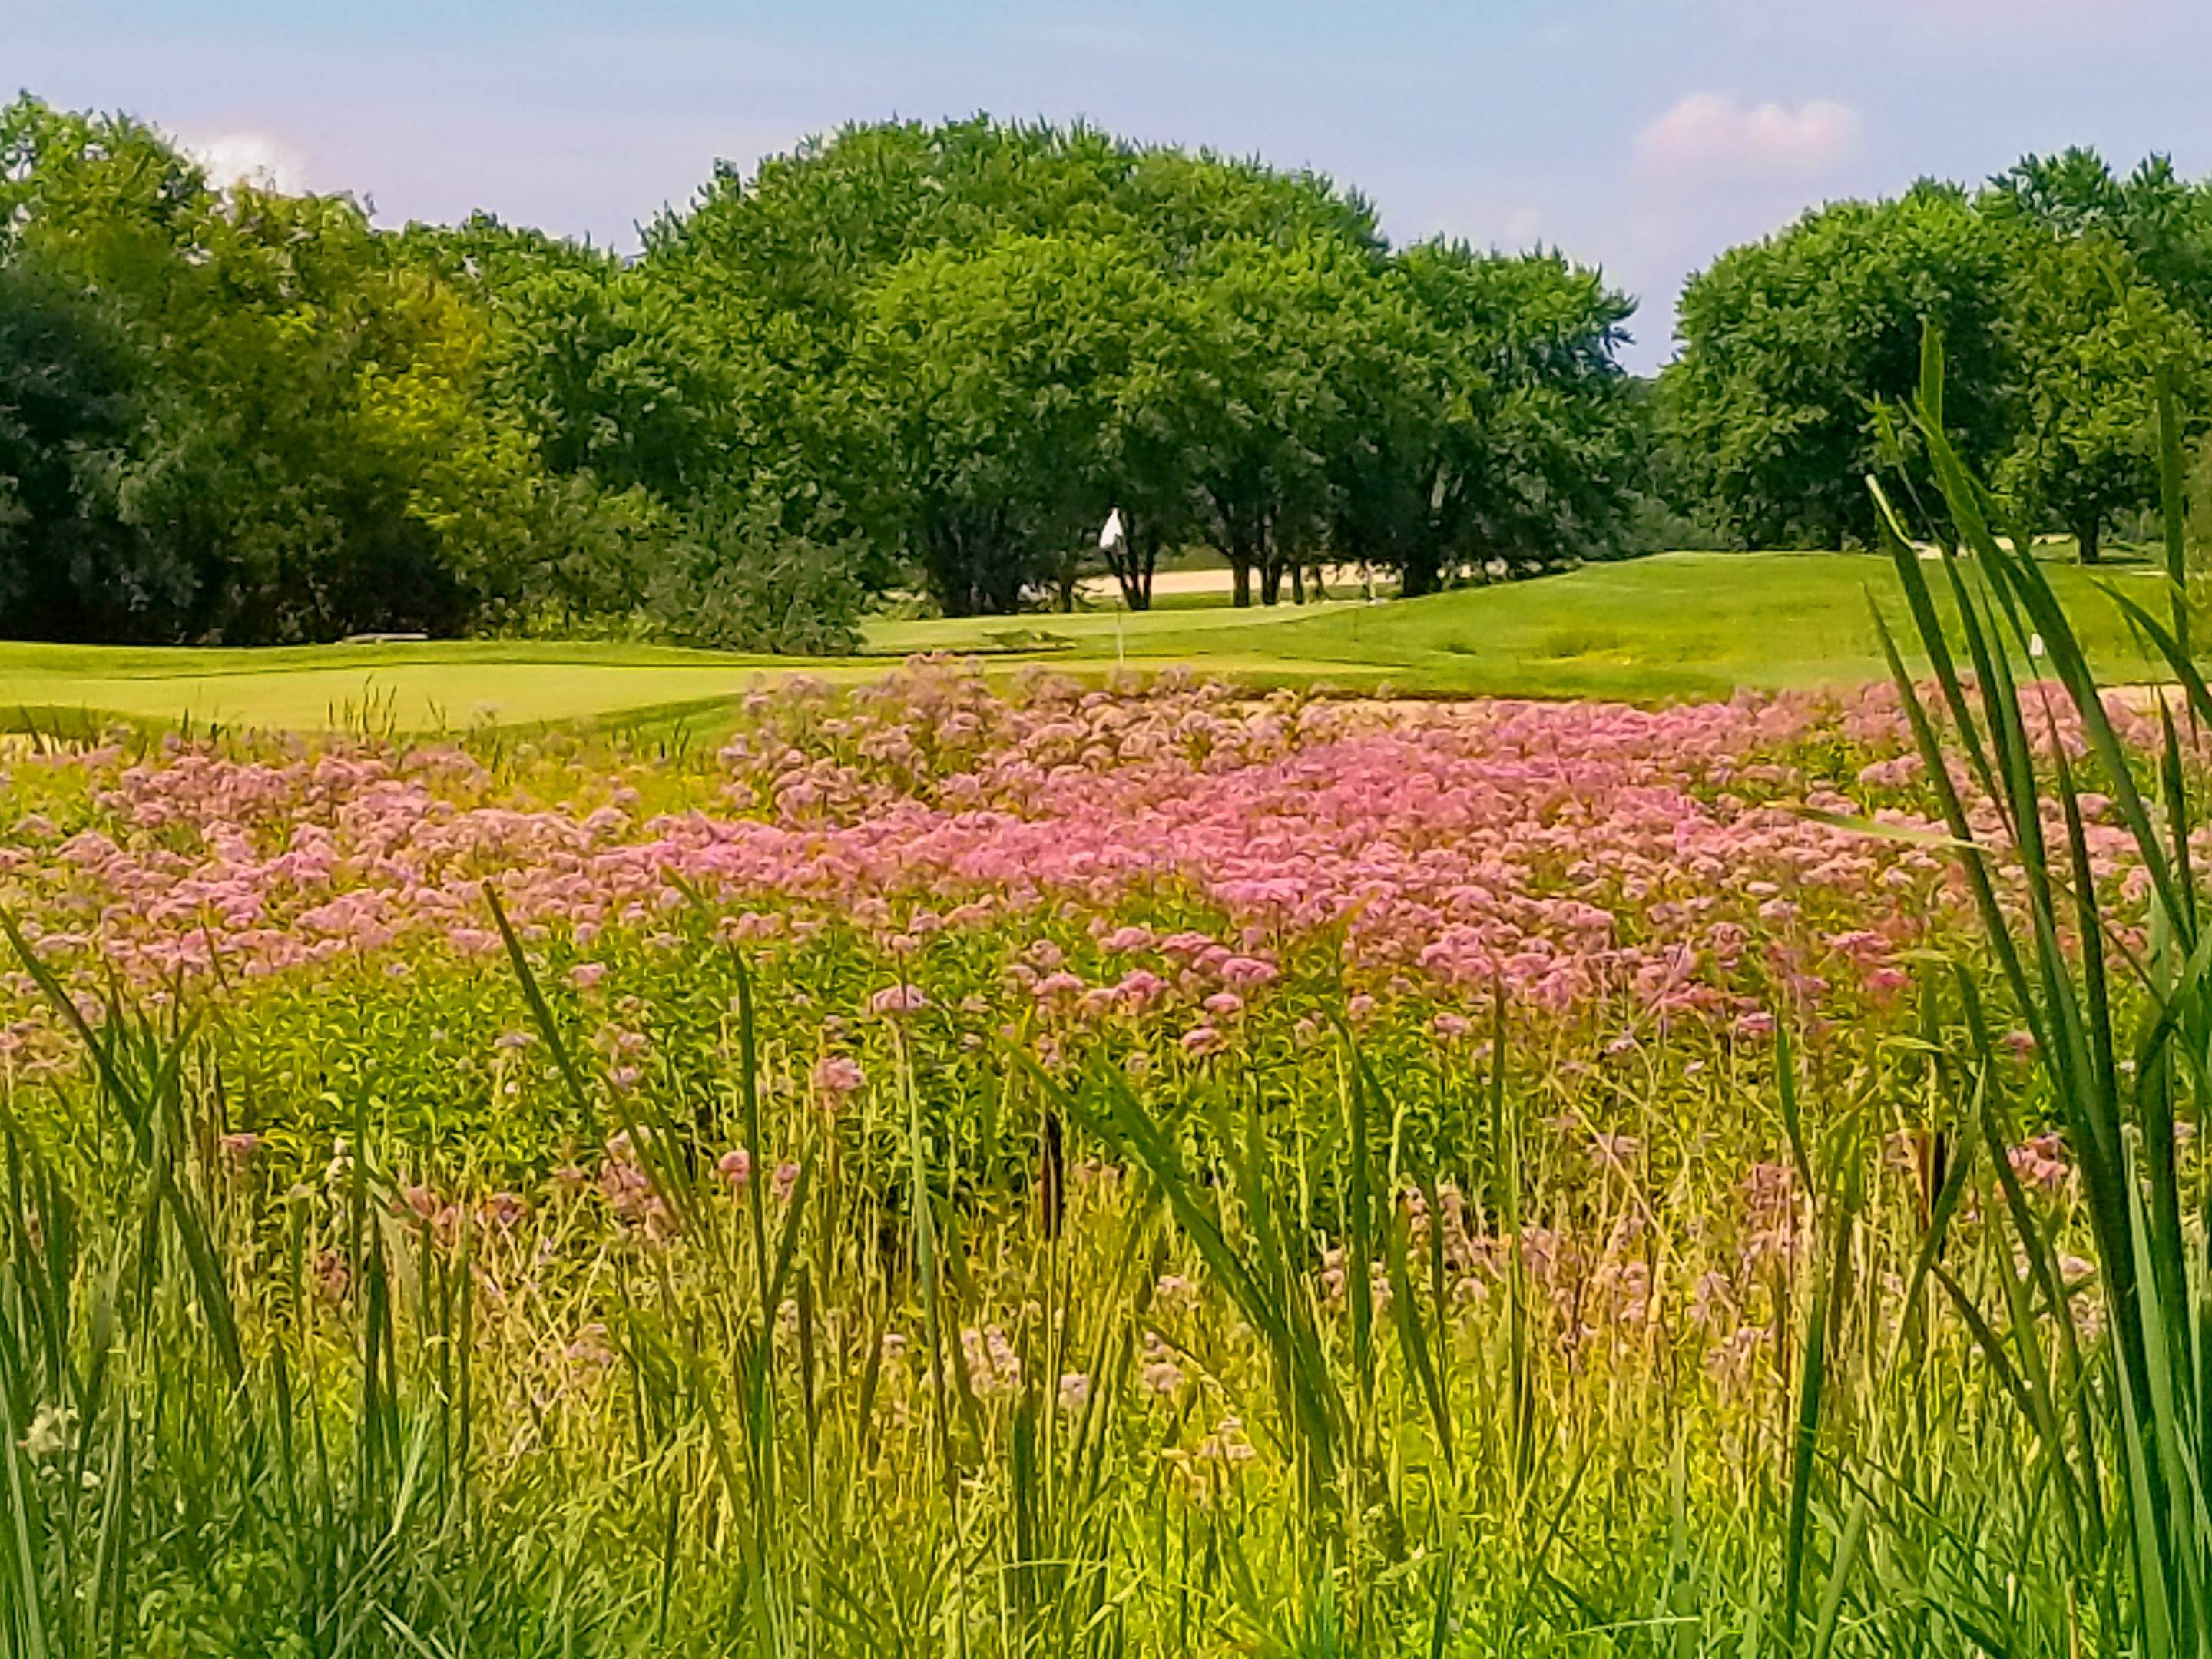 Fescue fields, created by architect Bob Cupp, greatly enhanced the renovated Highlands course.